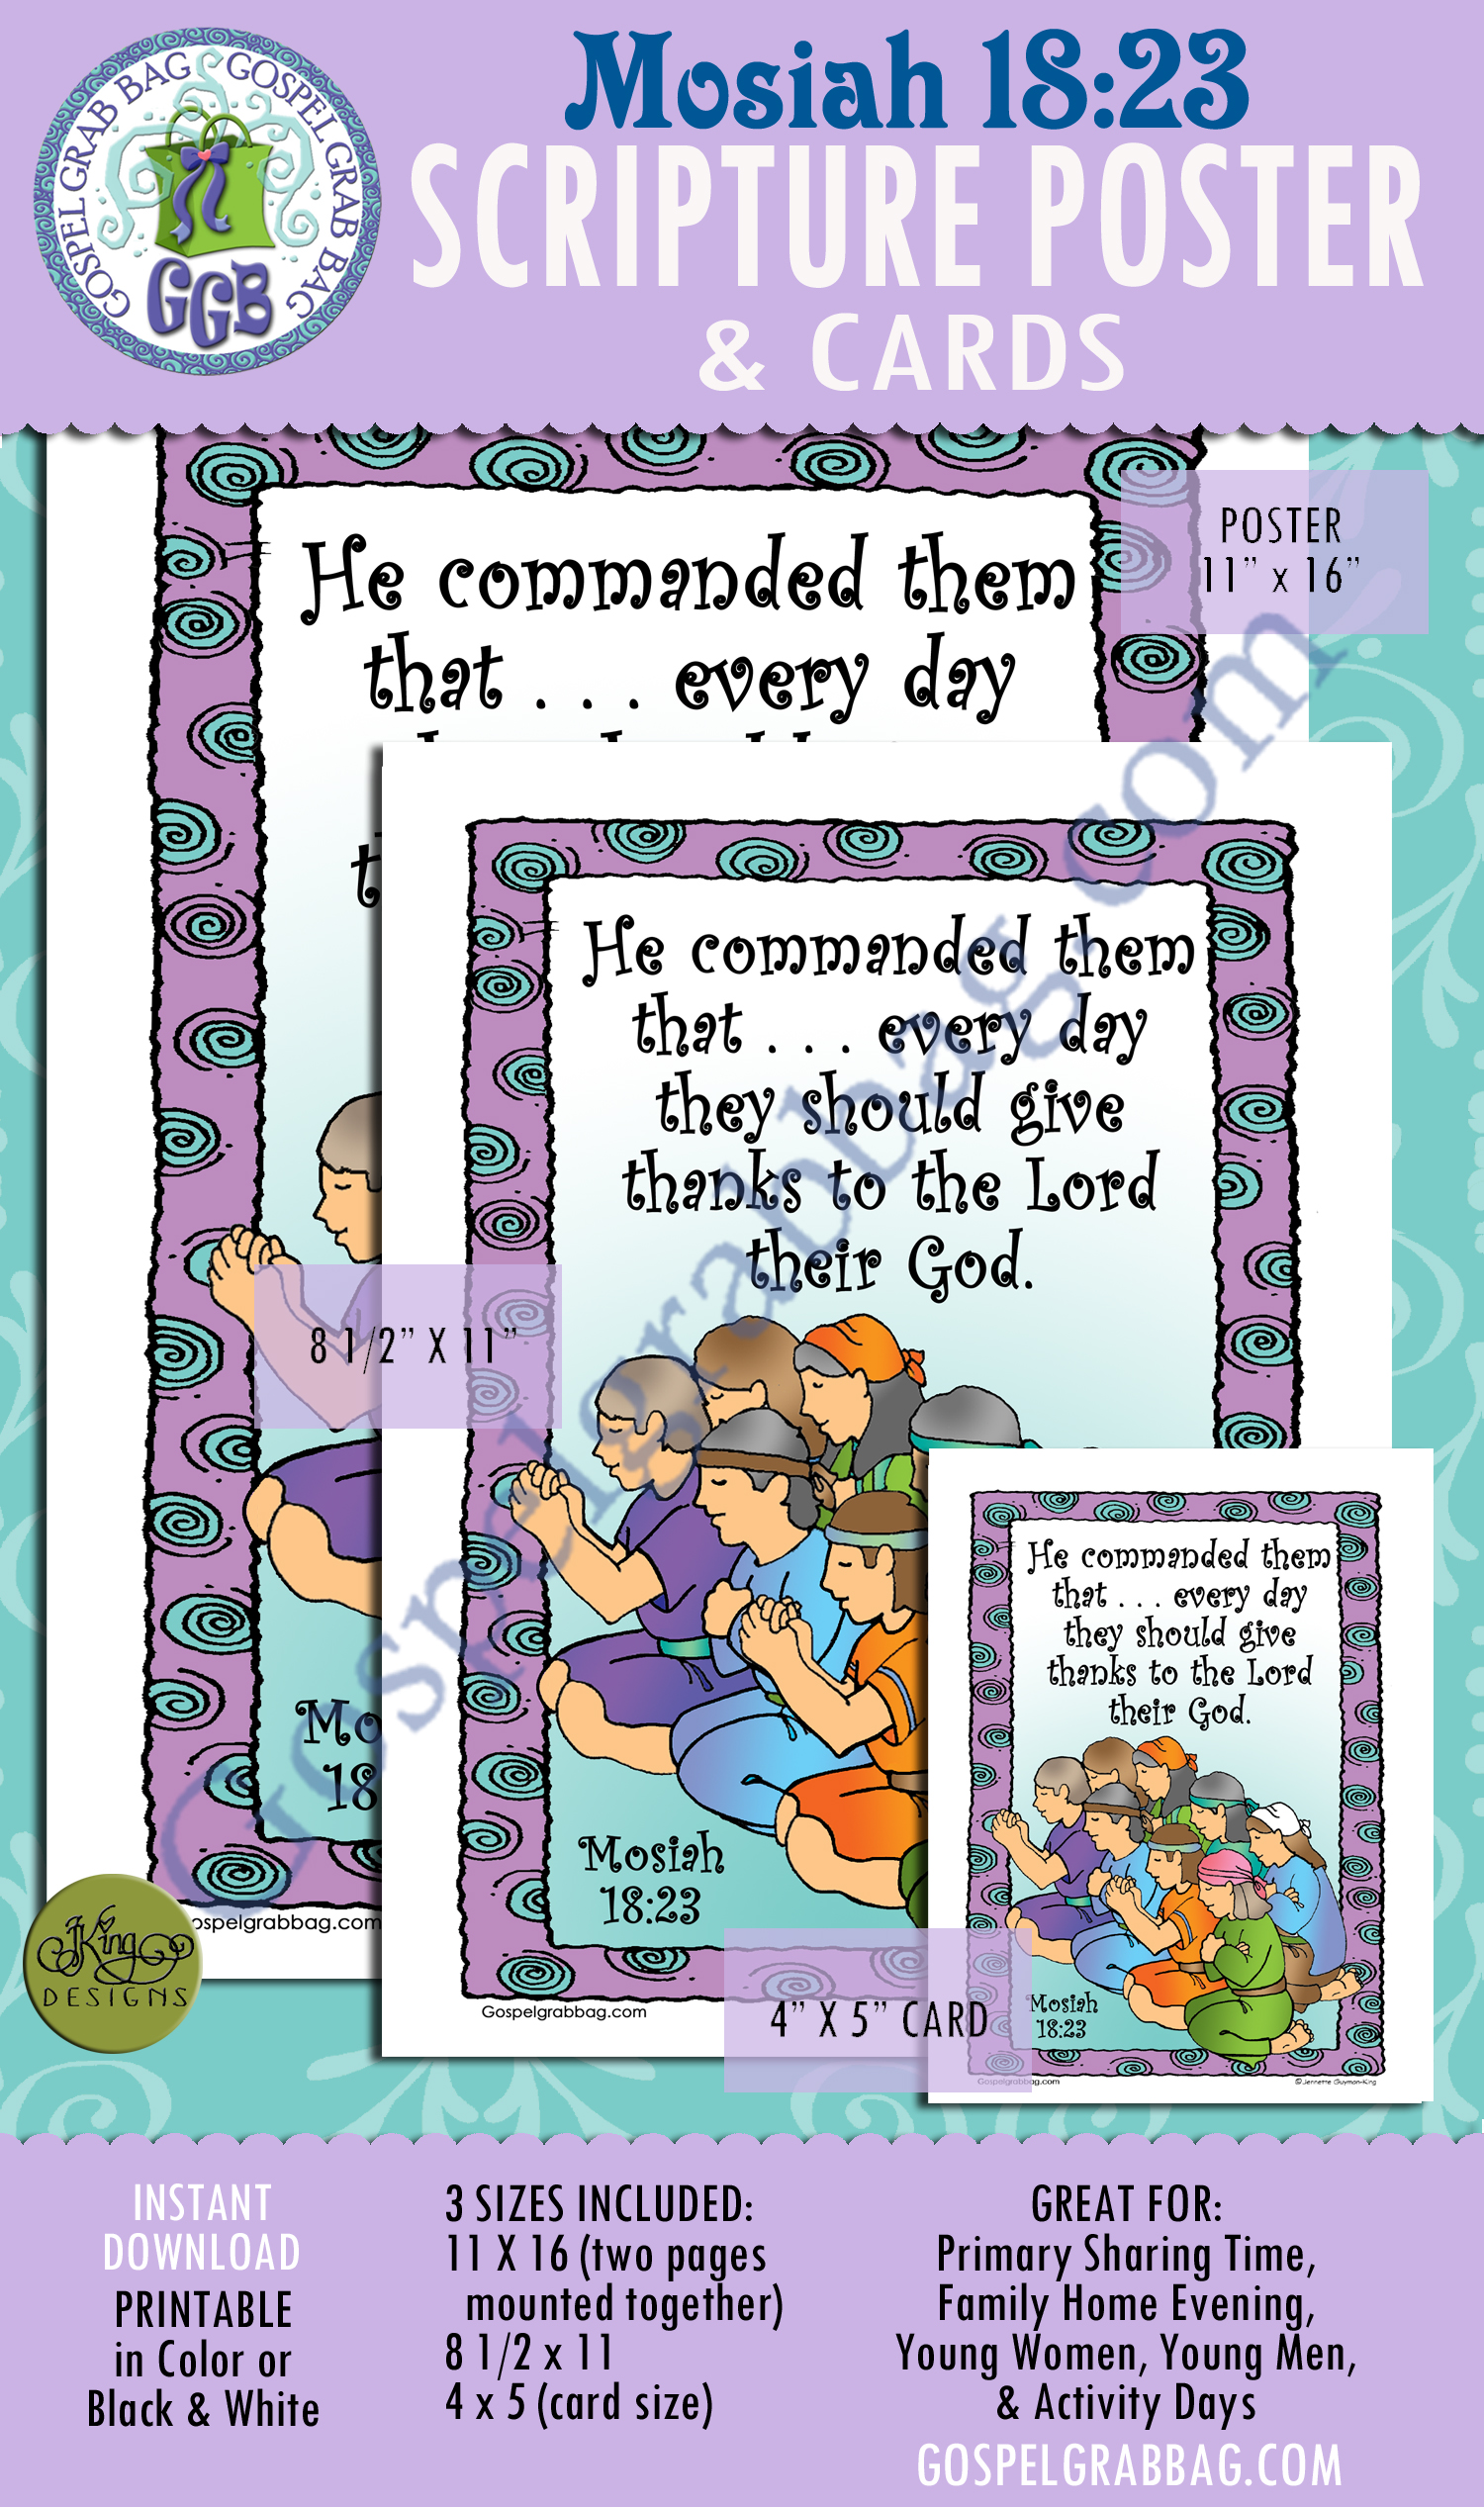 $2.00 Mosiah 18:23 SCRIPTURE POSTER & CARDS, Primary Sharing Time